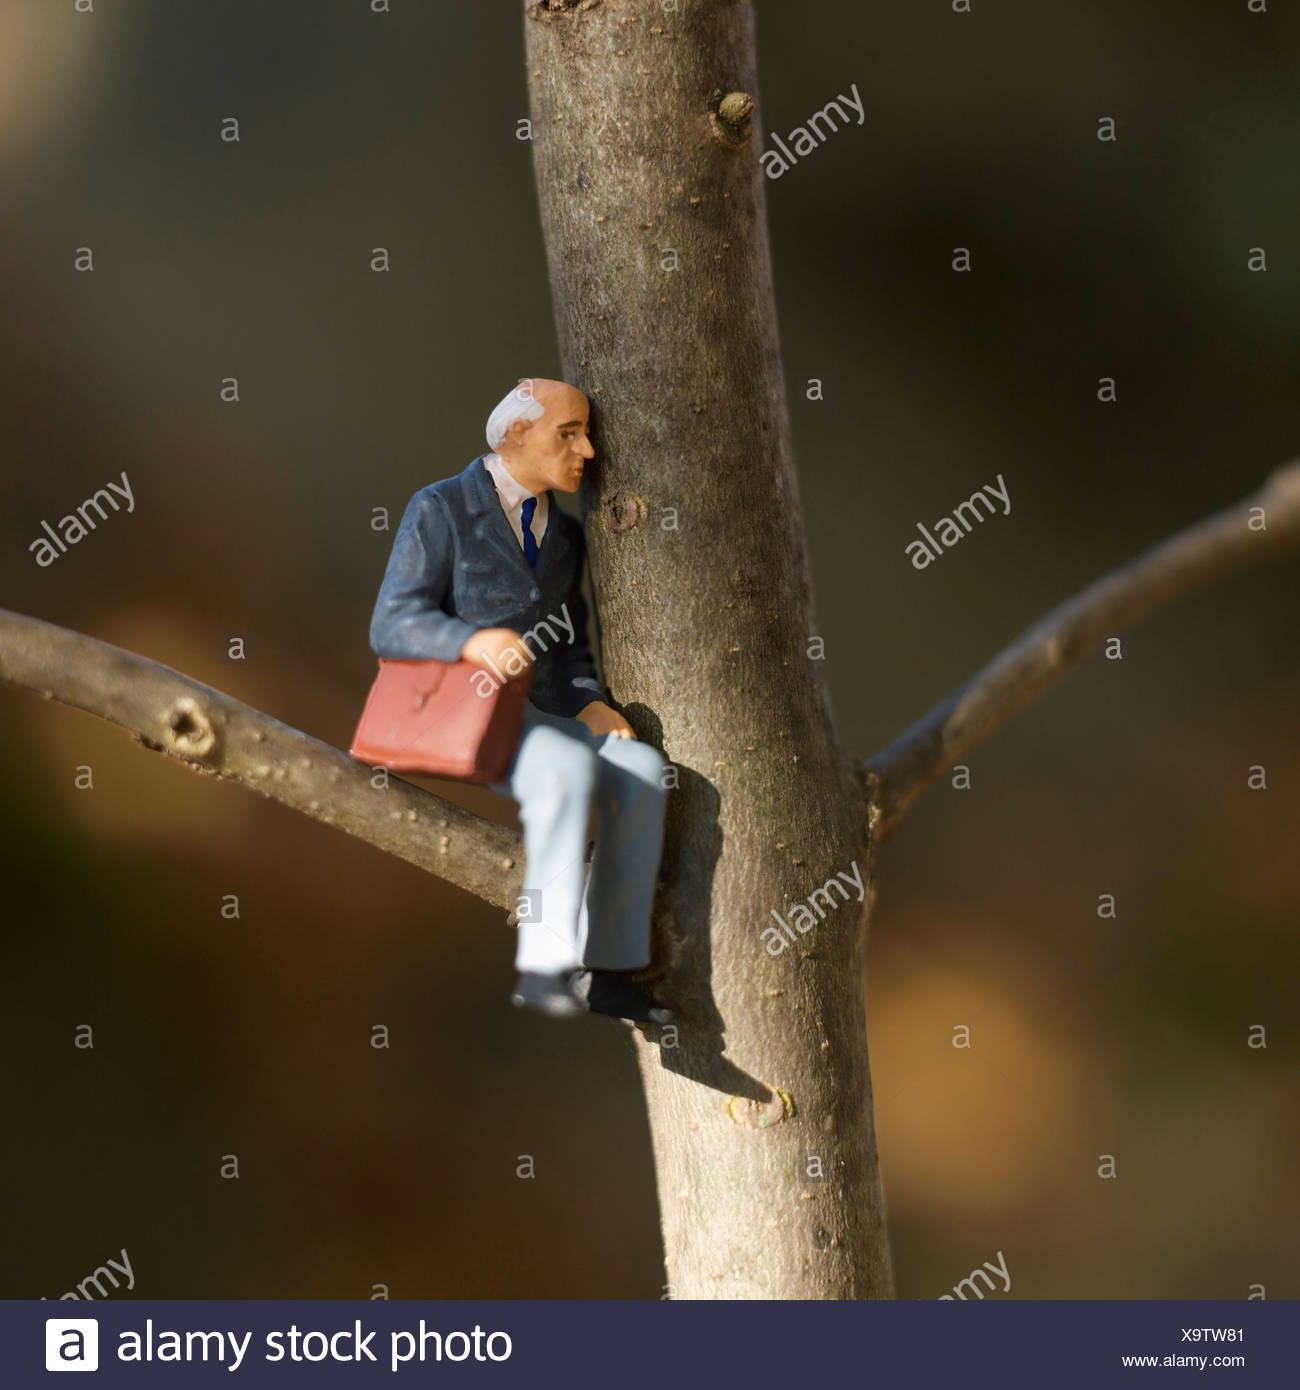 Solitary elderly male figure alone sitting in tree with briefcase - Stock Image